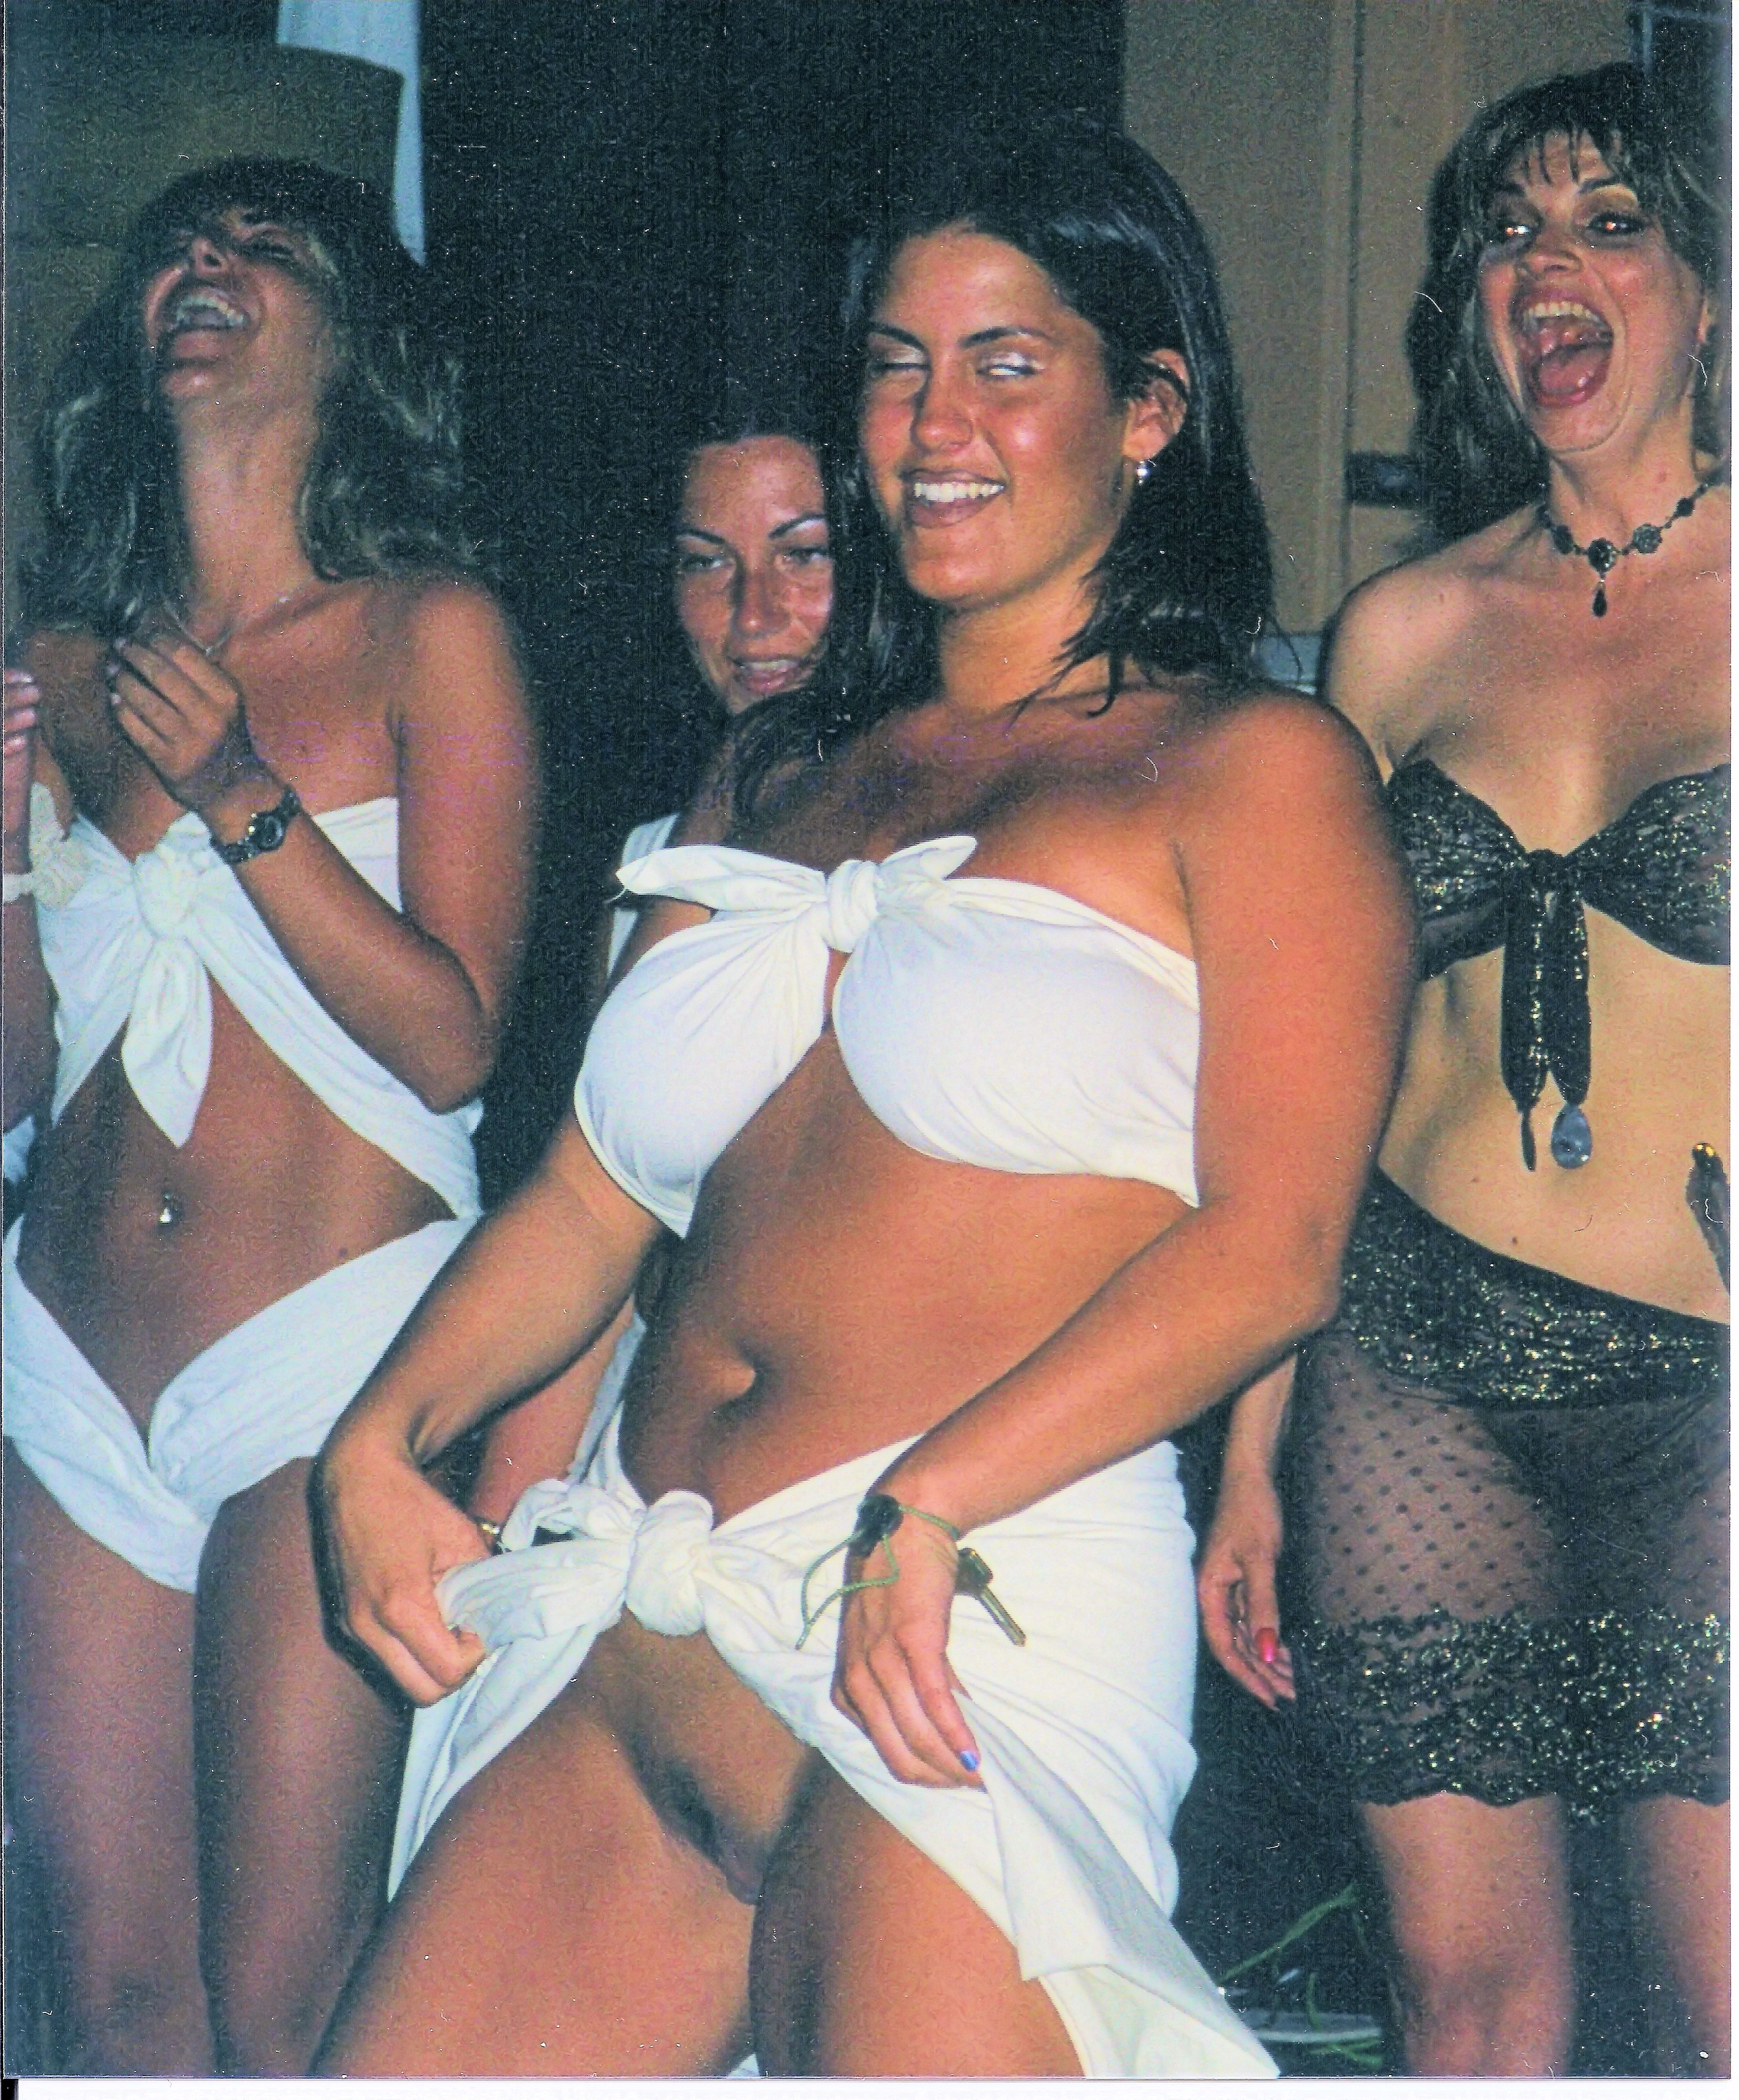 Naked hedonism party pictures